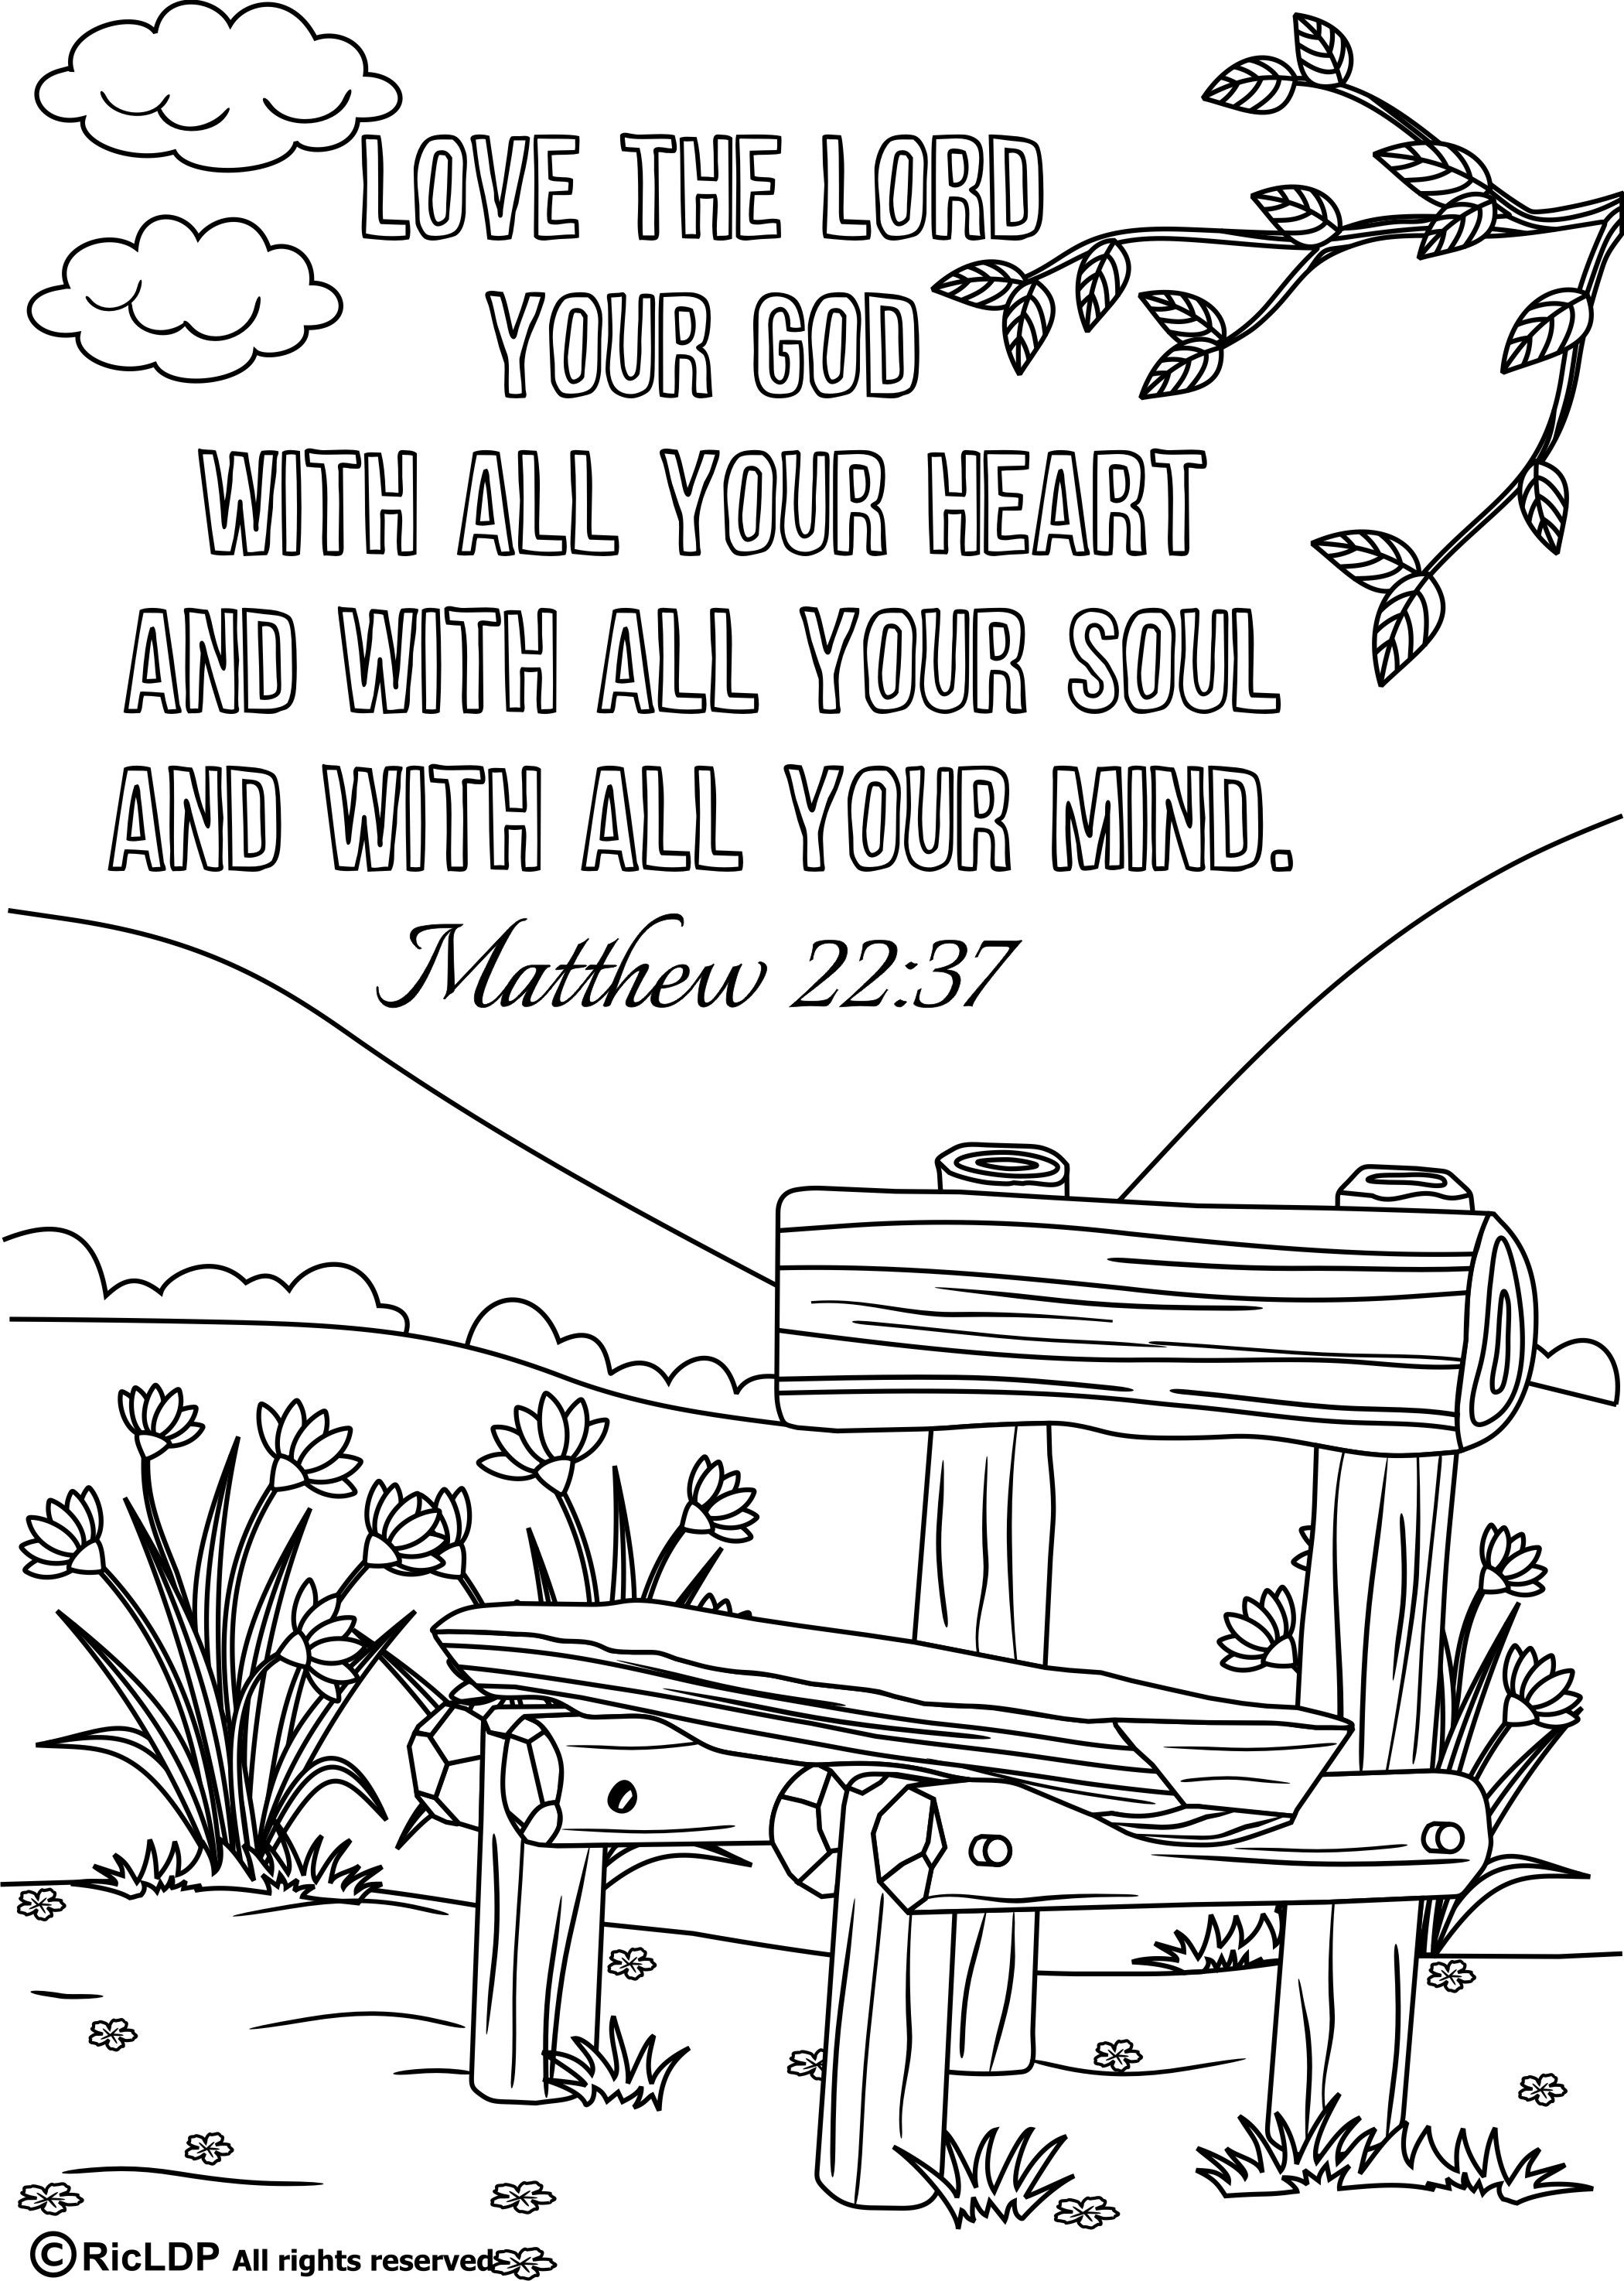 Thanksgiving coloring pages with bible verses - 15 Printable Bible Verse Coloring Pages